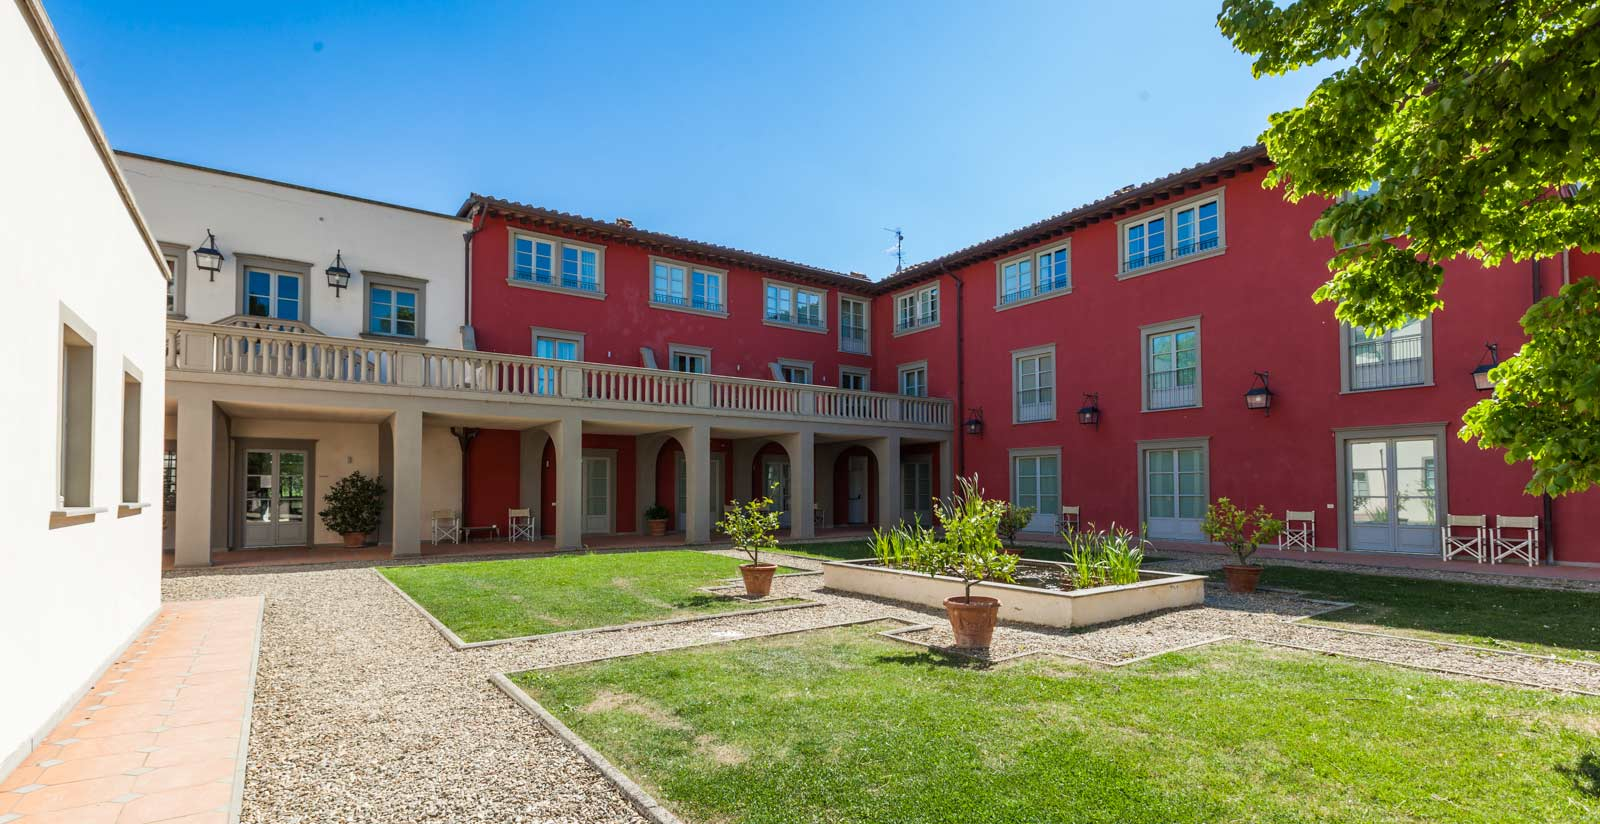 Villa Palagio Official Website Book Now At The Best Price